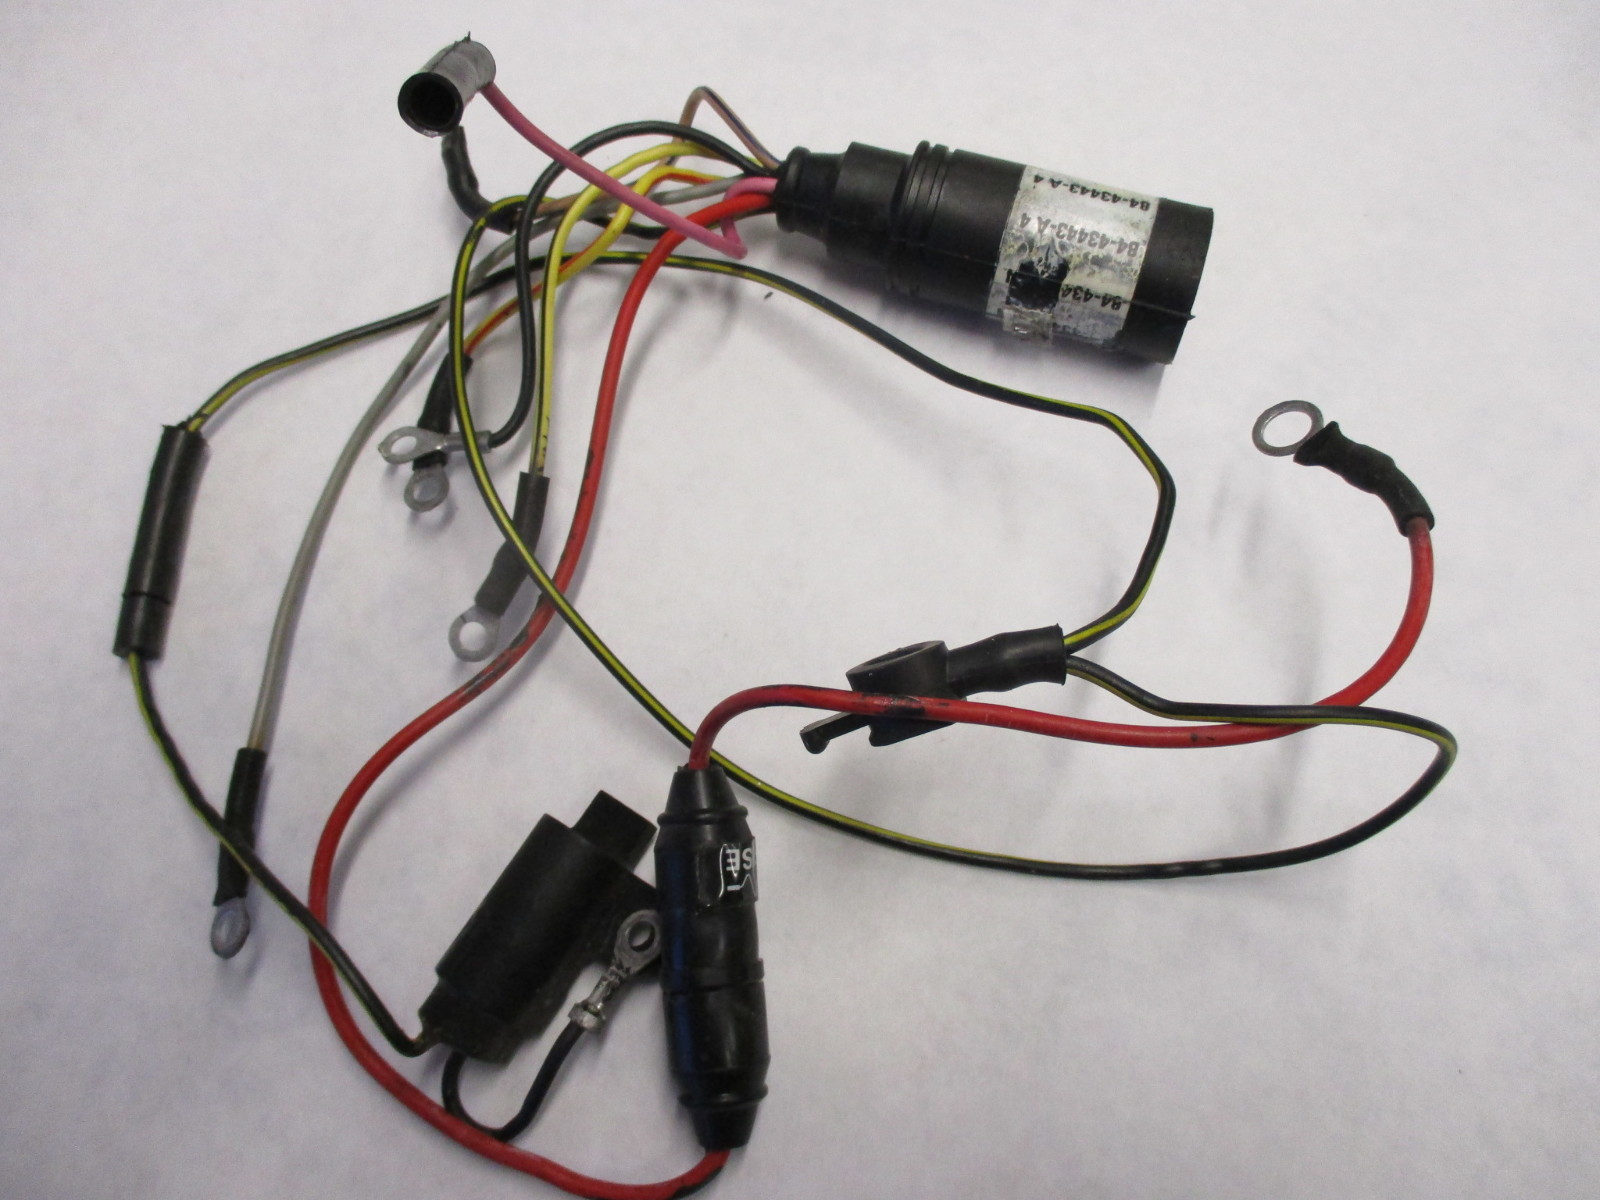 hight resolution of 84 43443a 7 mercury mariner wire harness assembly 84 43443a 9 100 125hp